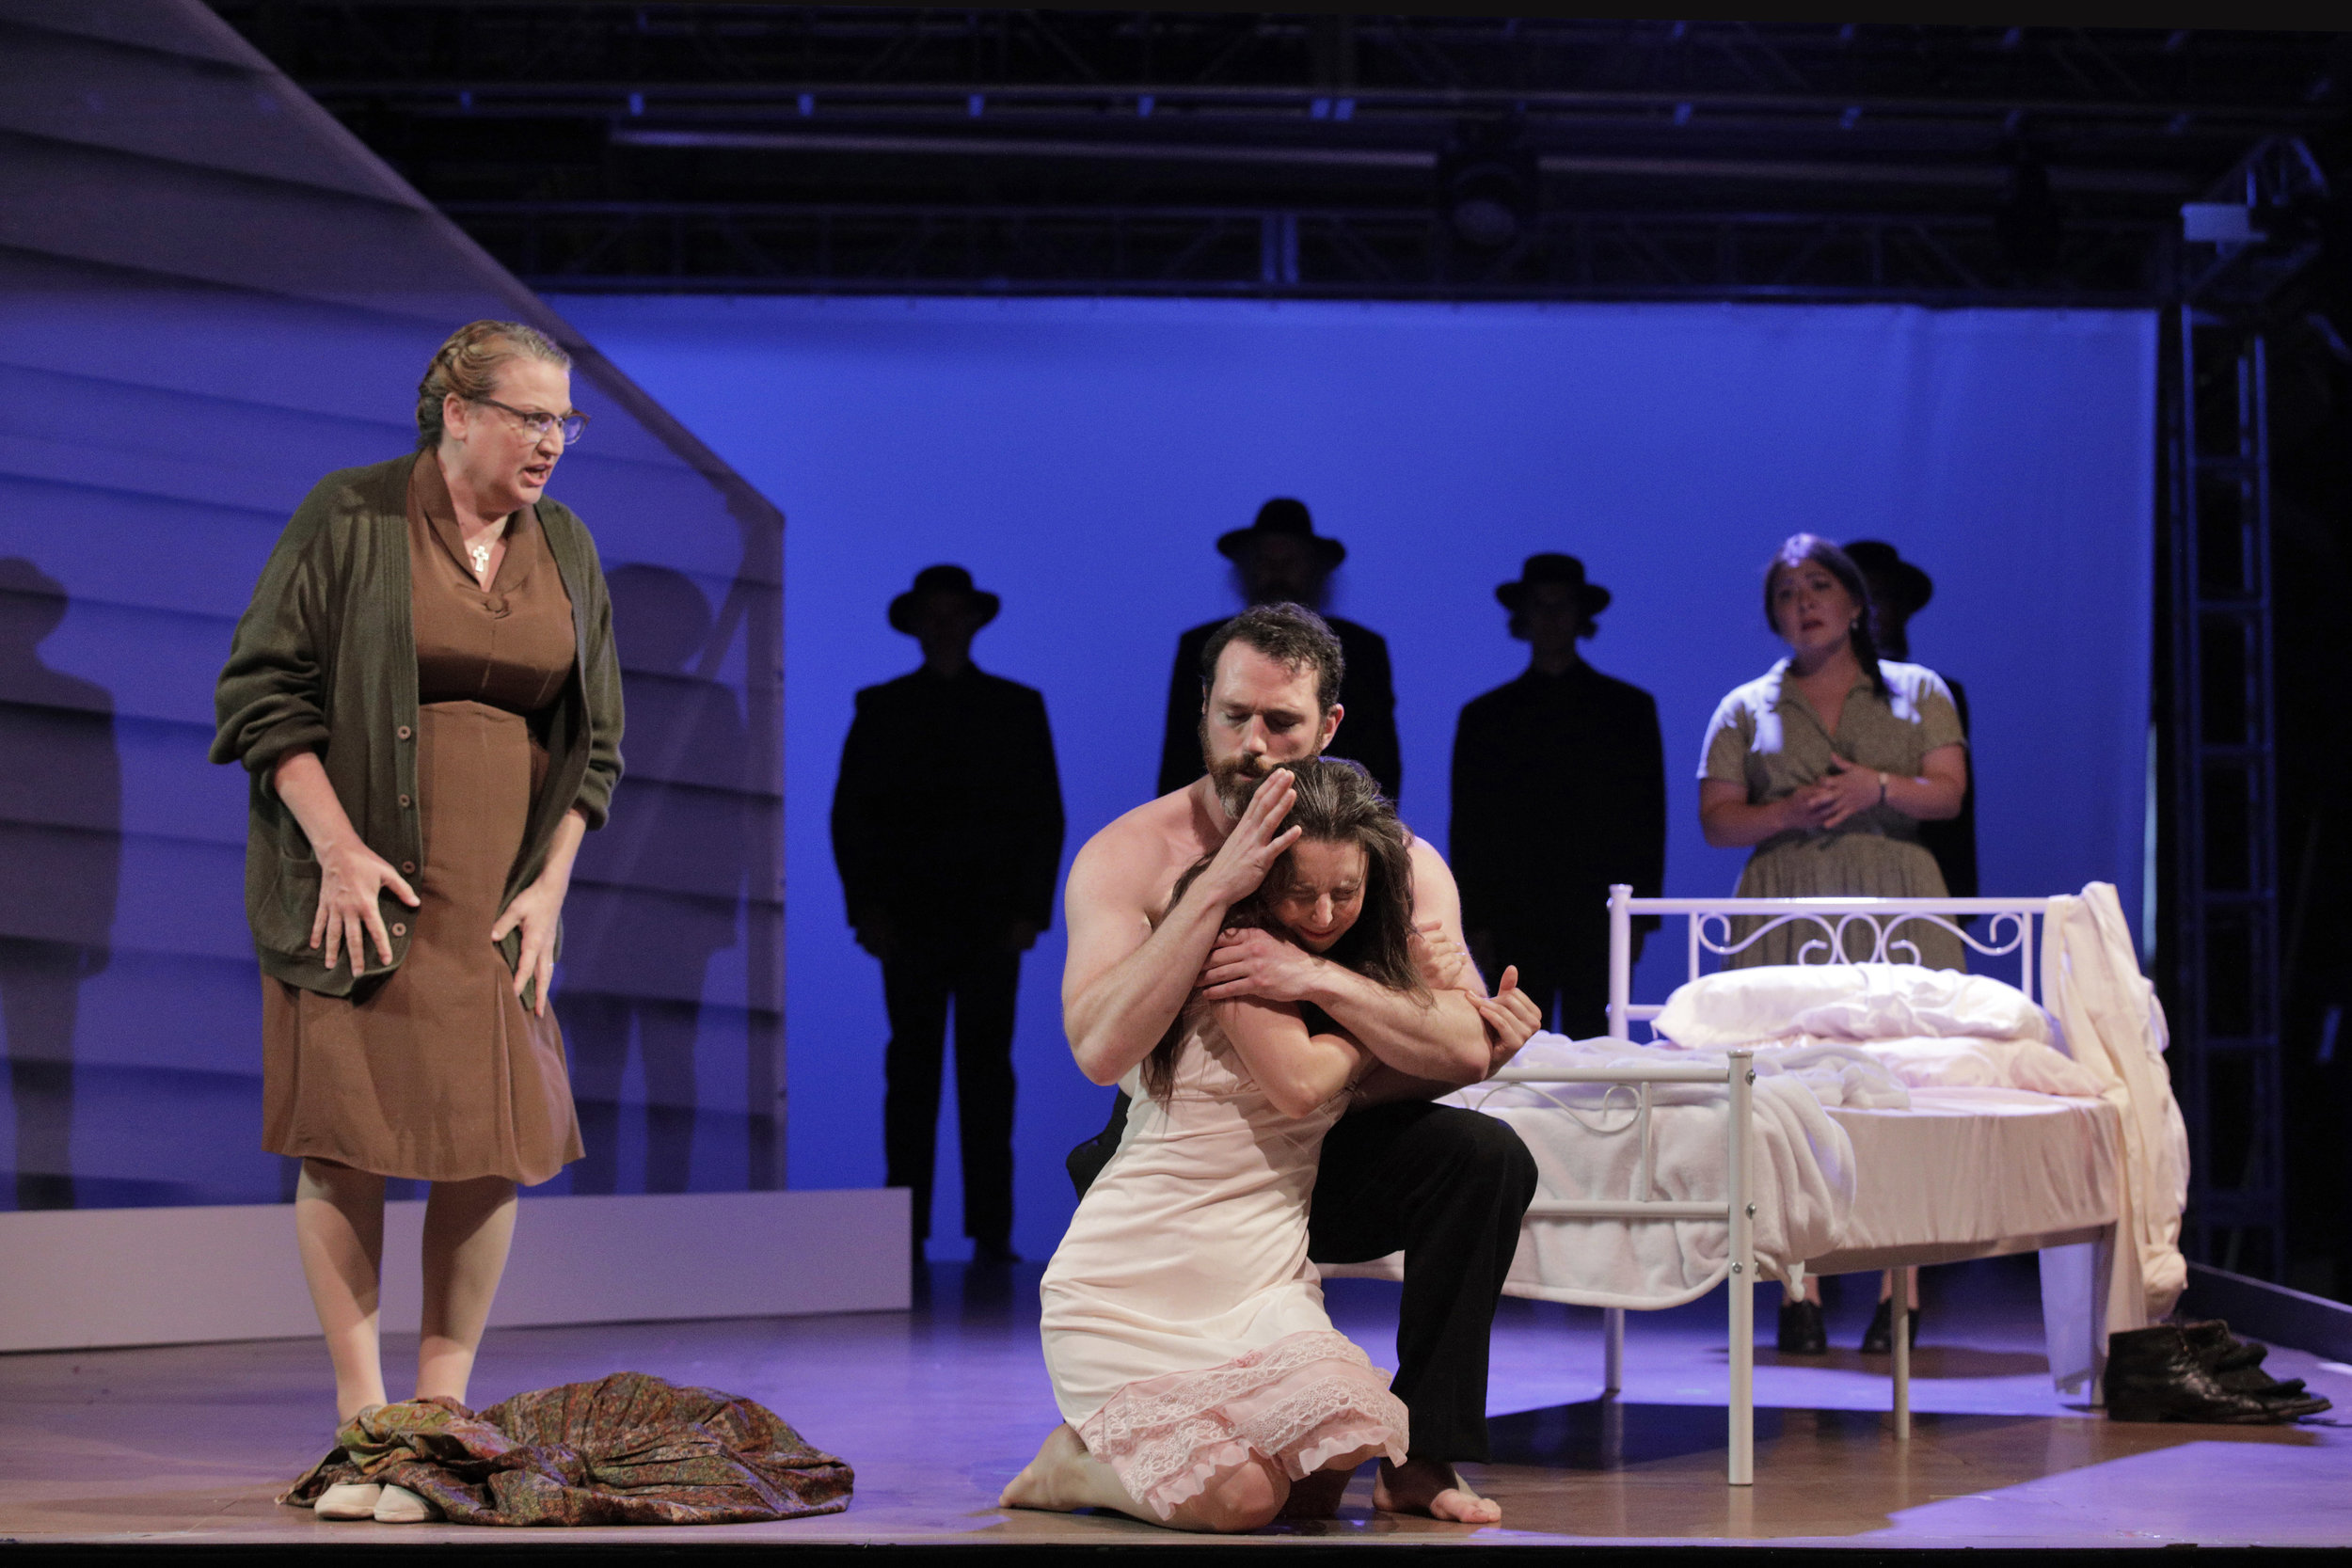 Mrs. McNeill (Kristin Clayton), Bess McNeill (Sara LeMesh), and Jan Nyman (Robert Wesley Mason) in West Edge Opera's production of Breaking the Waves